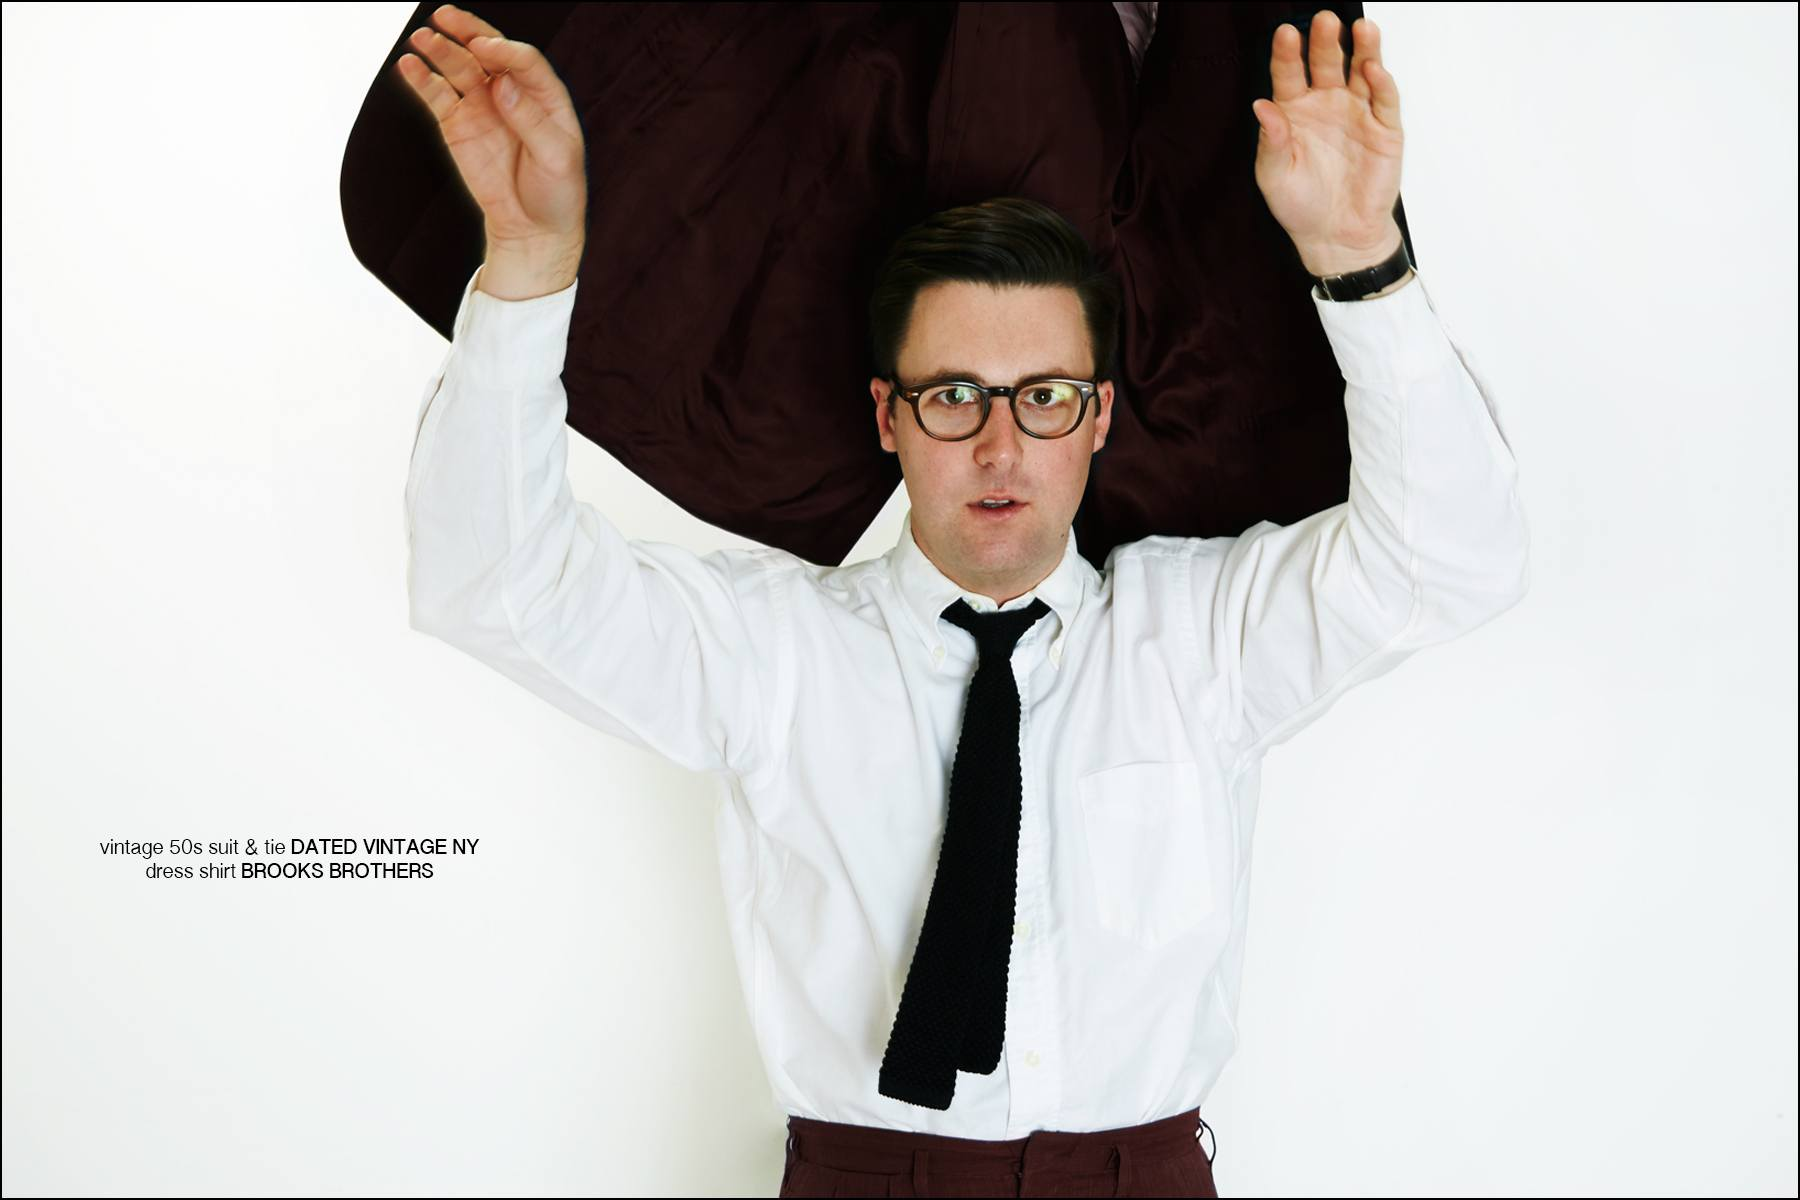 Musician Nick Waterhouse wears a Brooks Brothers shirt and vintage suit & tie from Dated Vintage NY. Photographed by Alexander Thompson for Ponyboy magazine New York.